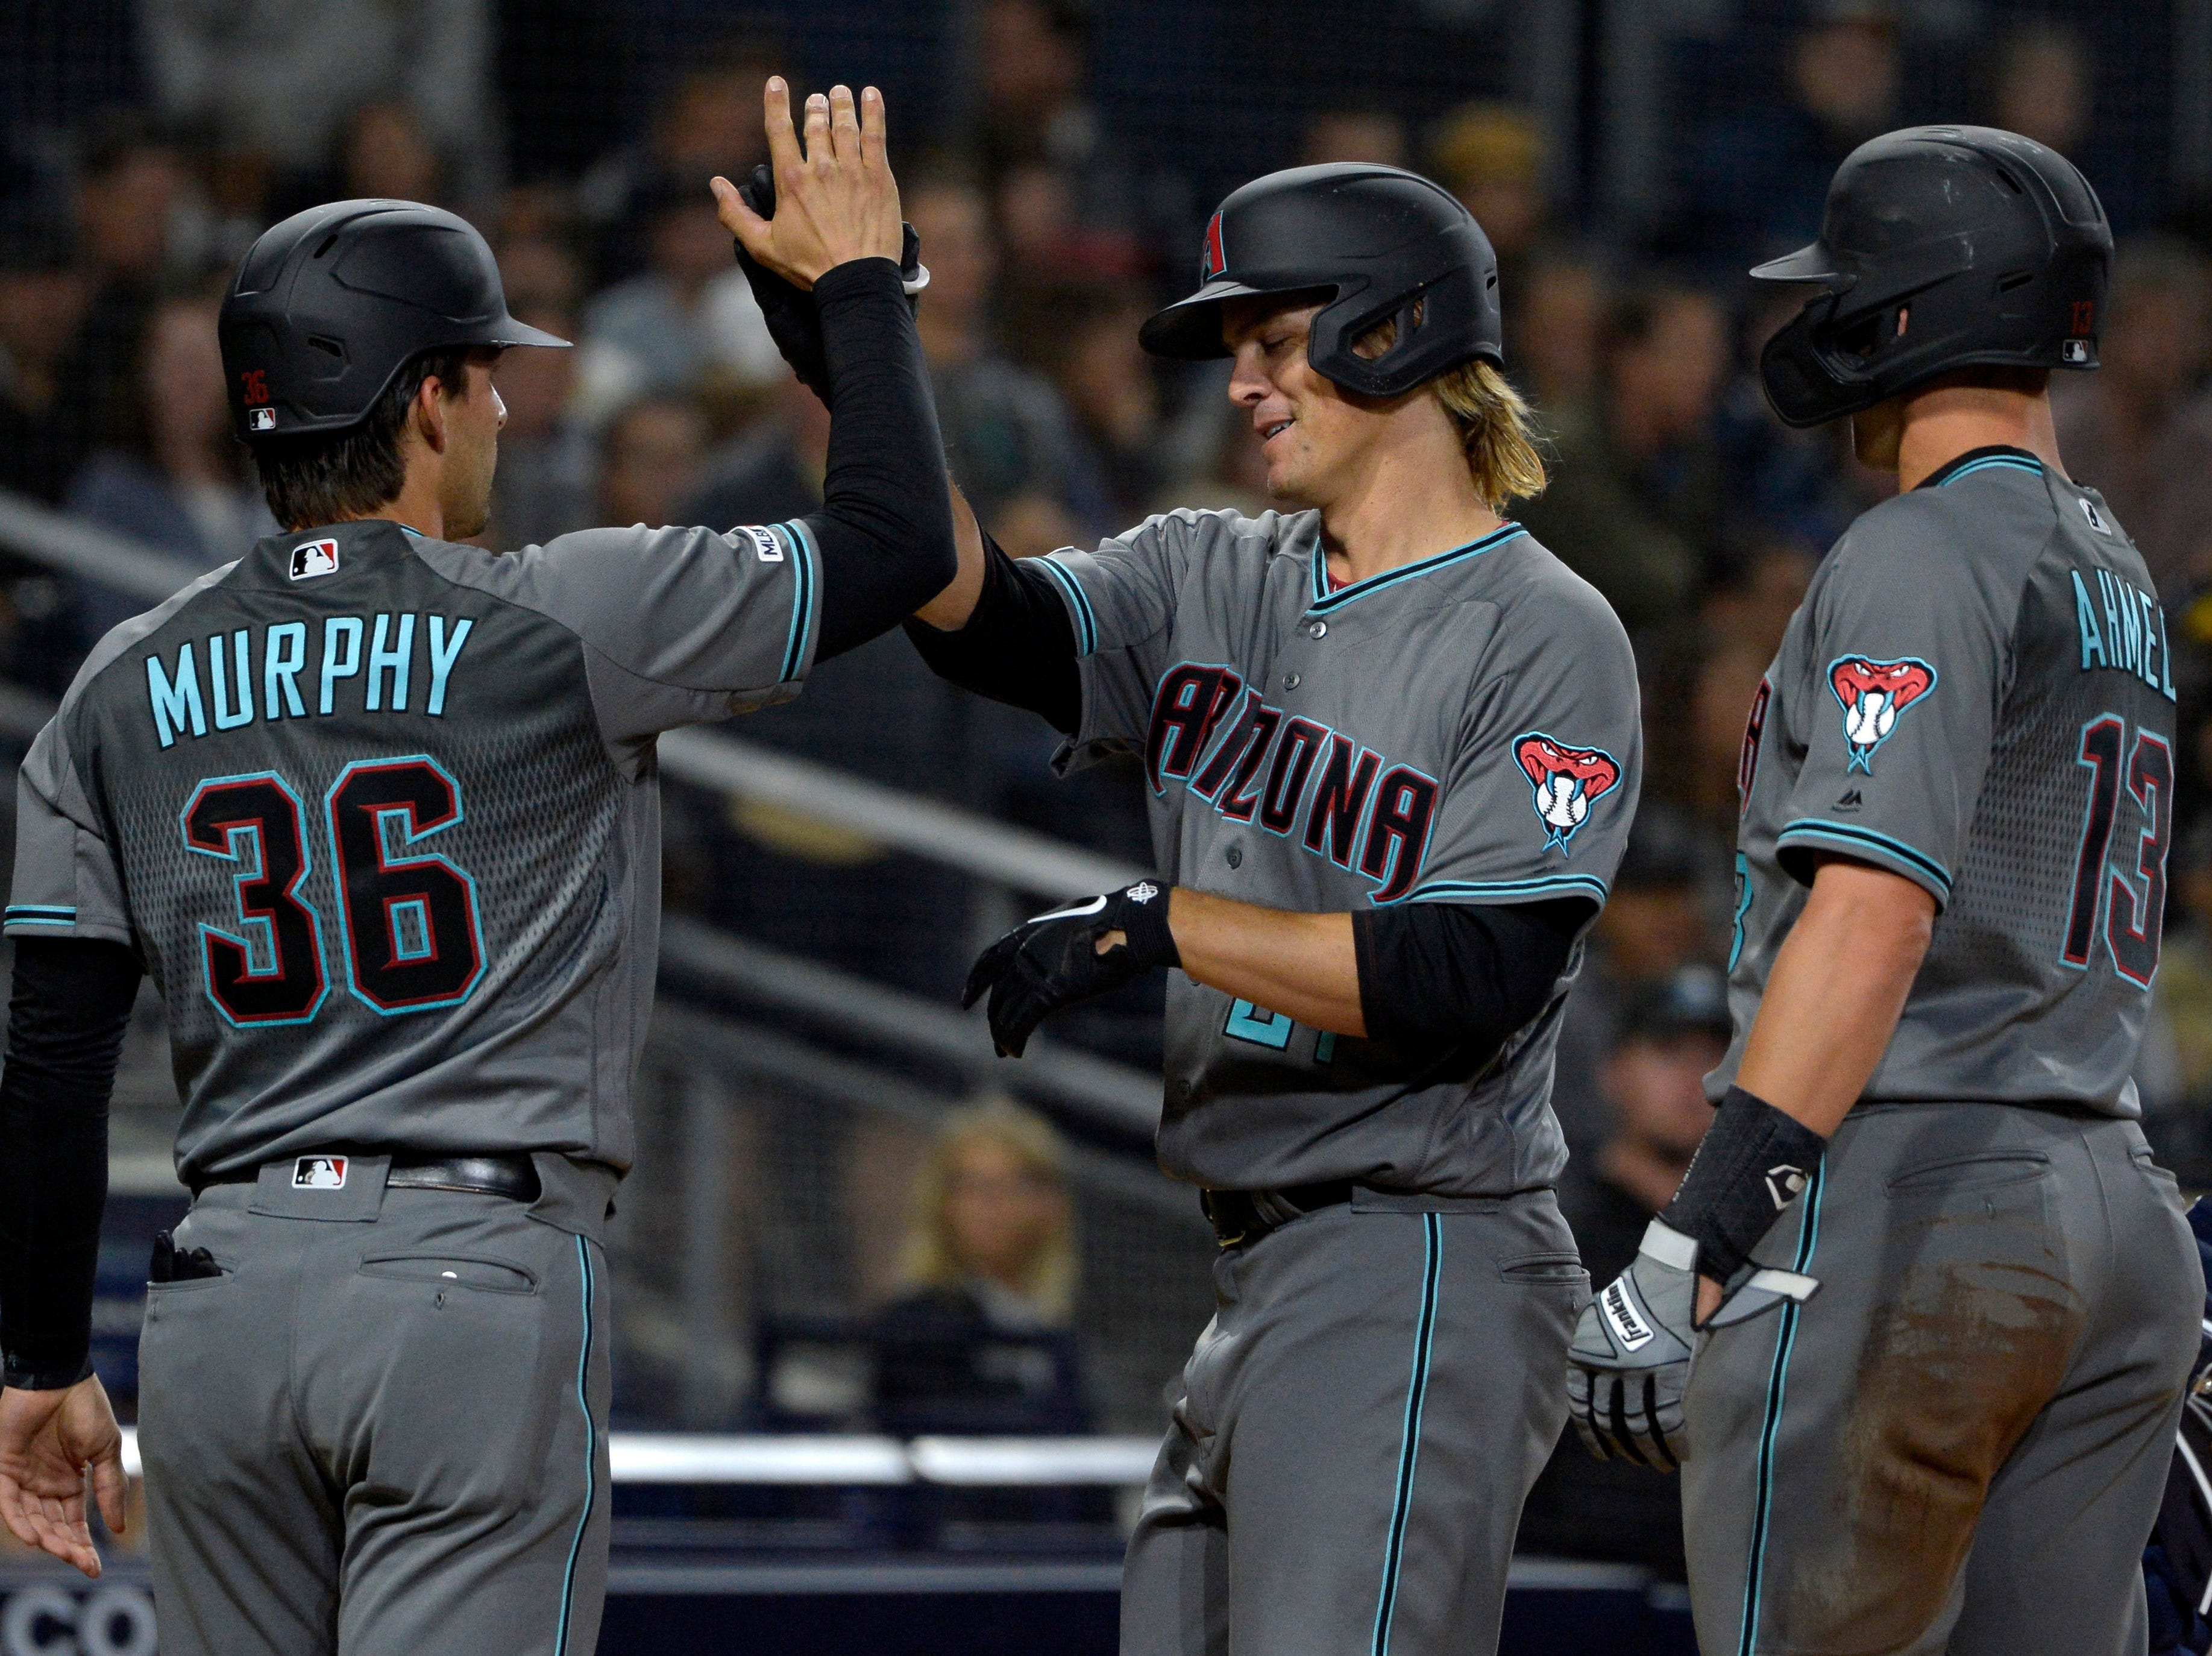 Apr 2, 2019; San Diego, CA, USA; Arizona Diamondbacks starting pitcher Zack Greinke (middle) celebrates with catcher John Ryan Murphy (36) and shortstop Nick Ahmed (13) after hitting a three run home run against the San Diego Padres during the fourth inning at Petco Park. Mandatory Credit: Jake Roth-USA TODAY Sports